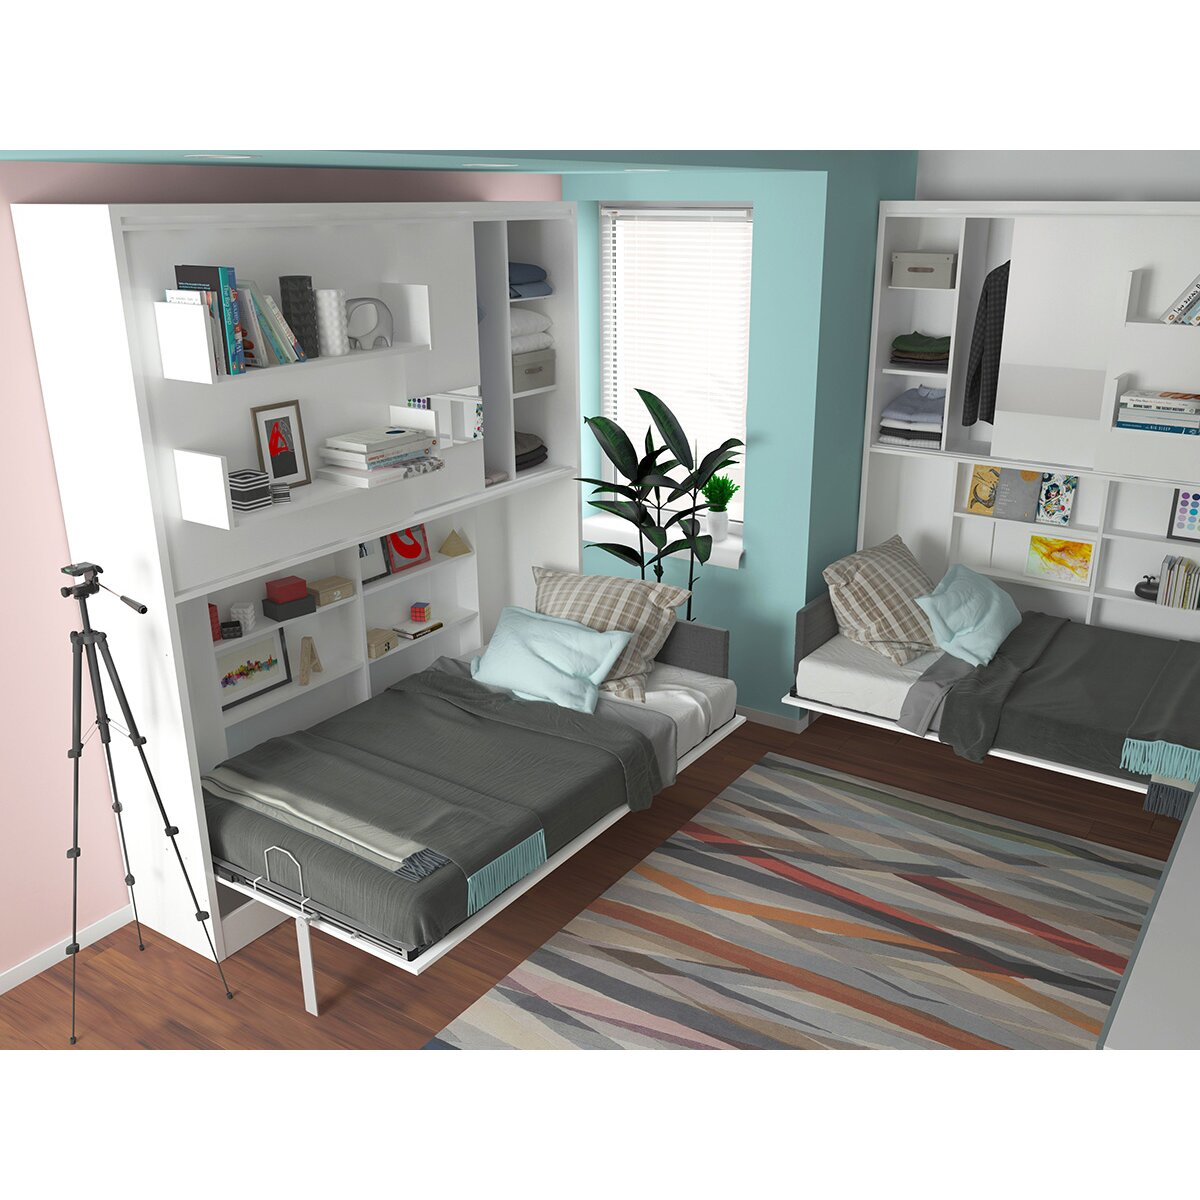 Multimo Parete Letto Wall Twin Murphy Bed Wayfair